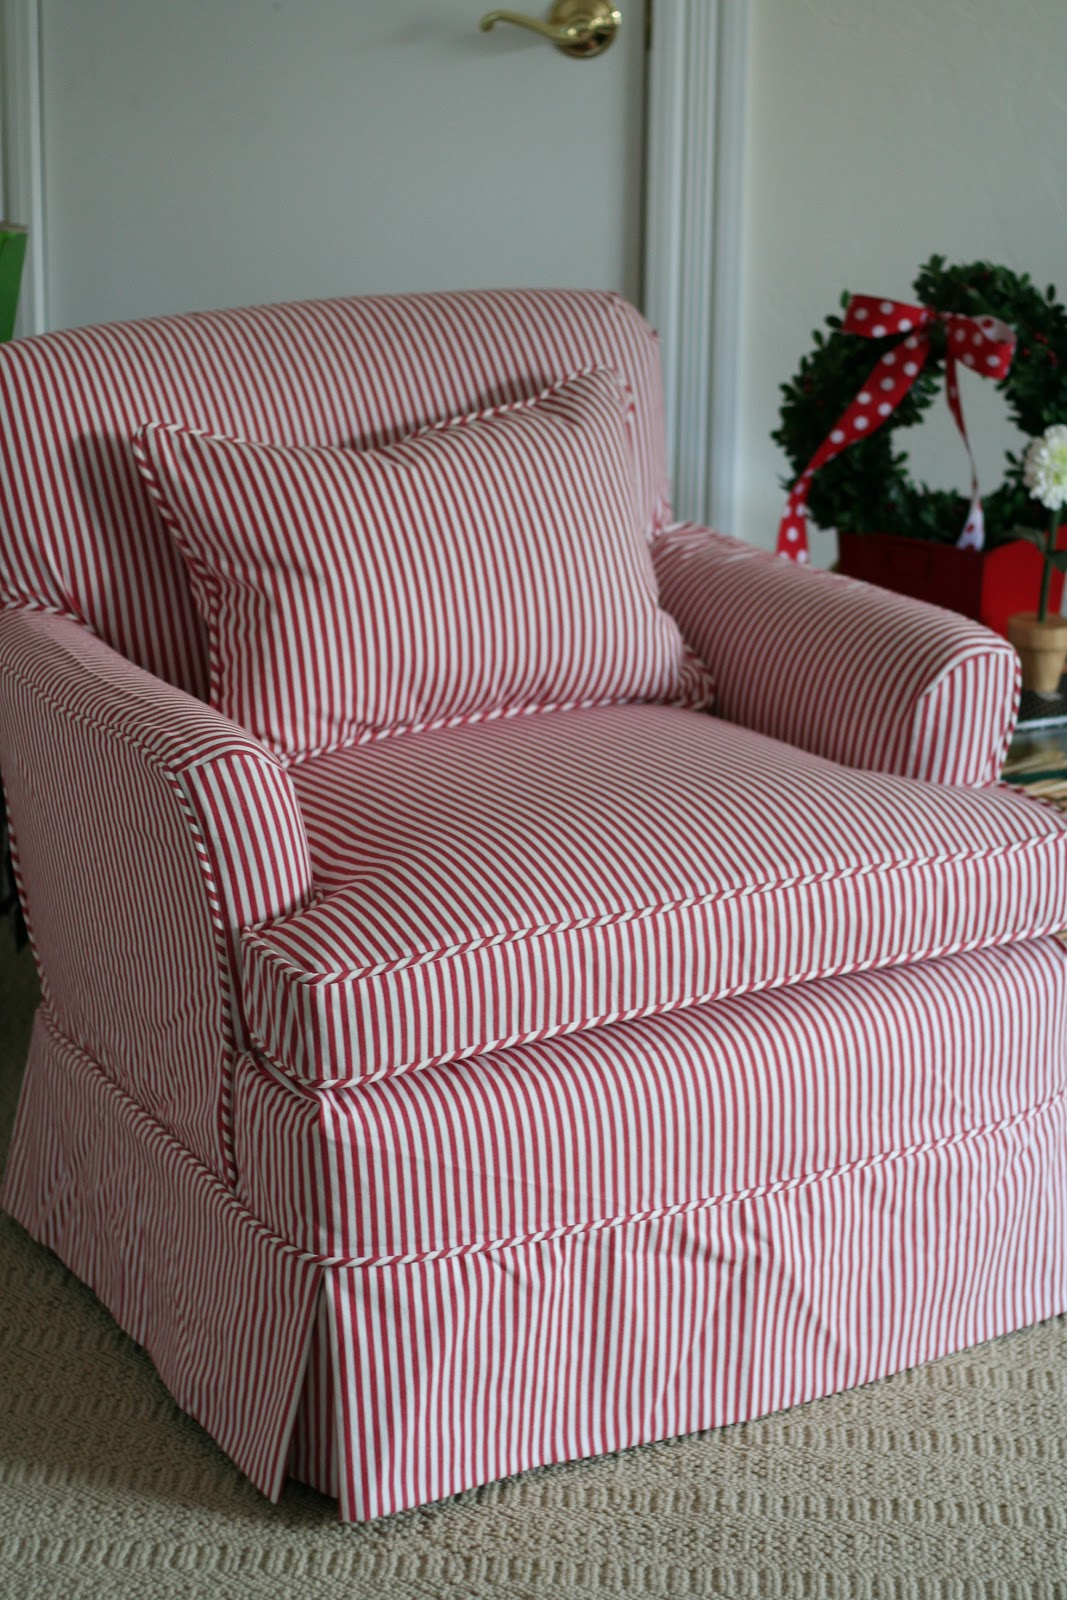 custom slipcovers by shelley red white striped chair. Black Bedroom Furniture Sets. Home Design Ideas